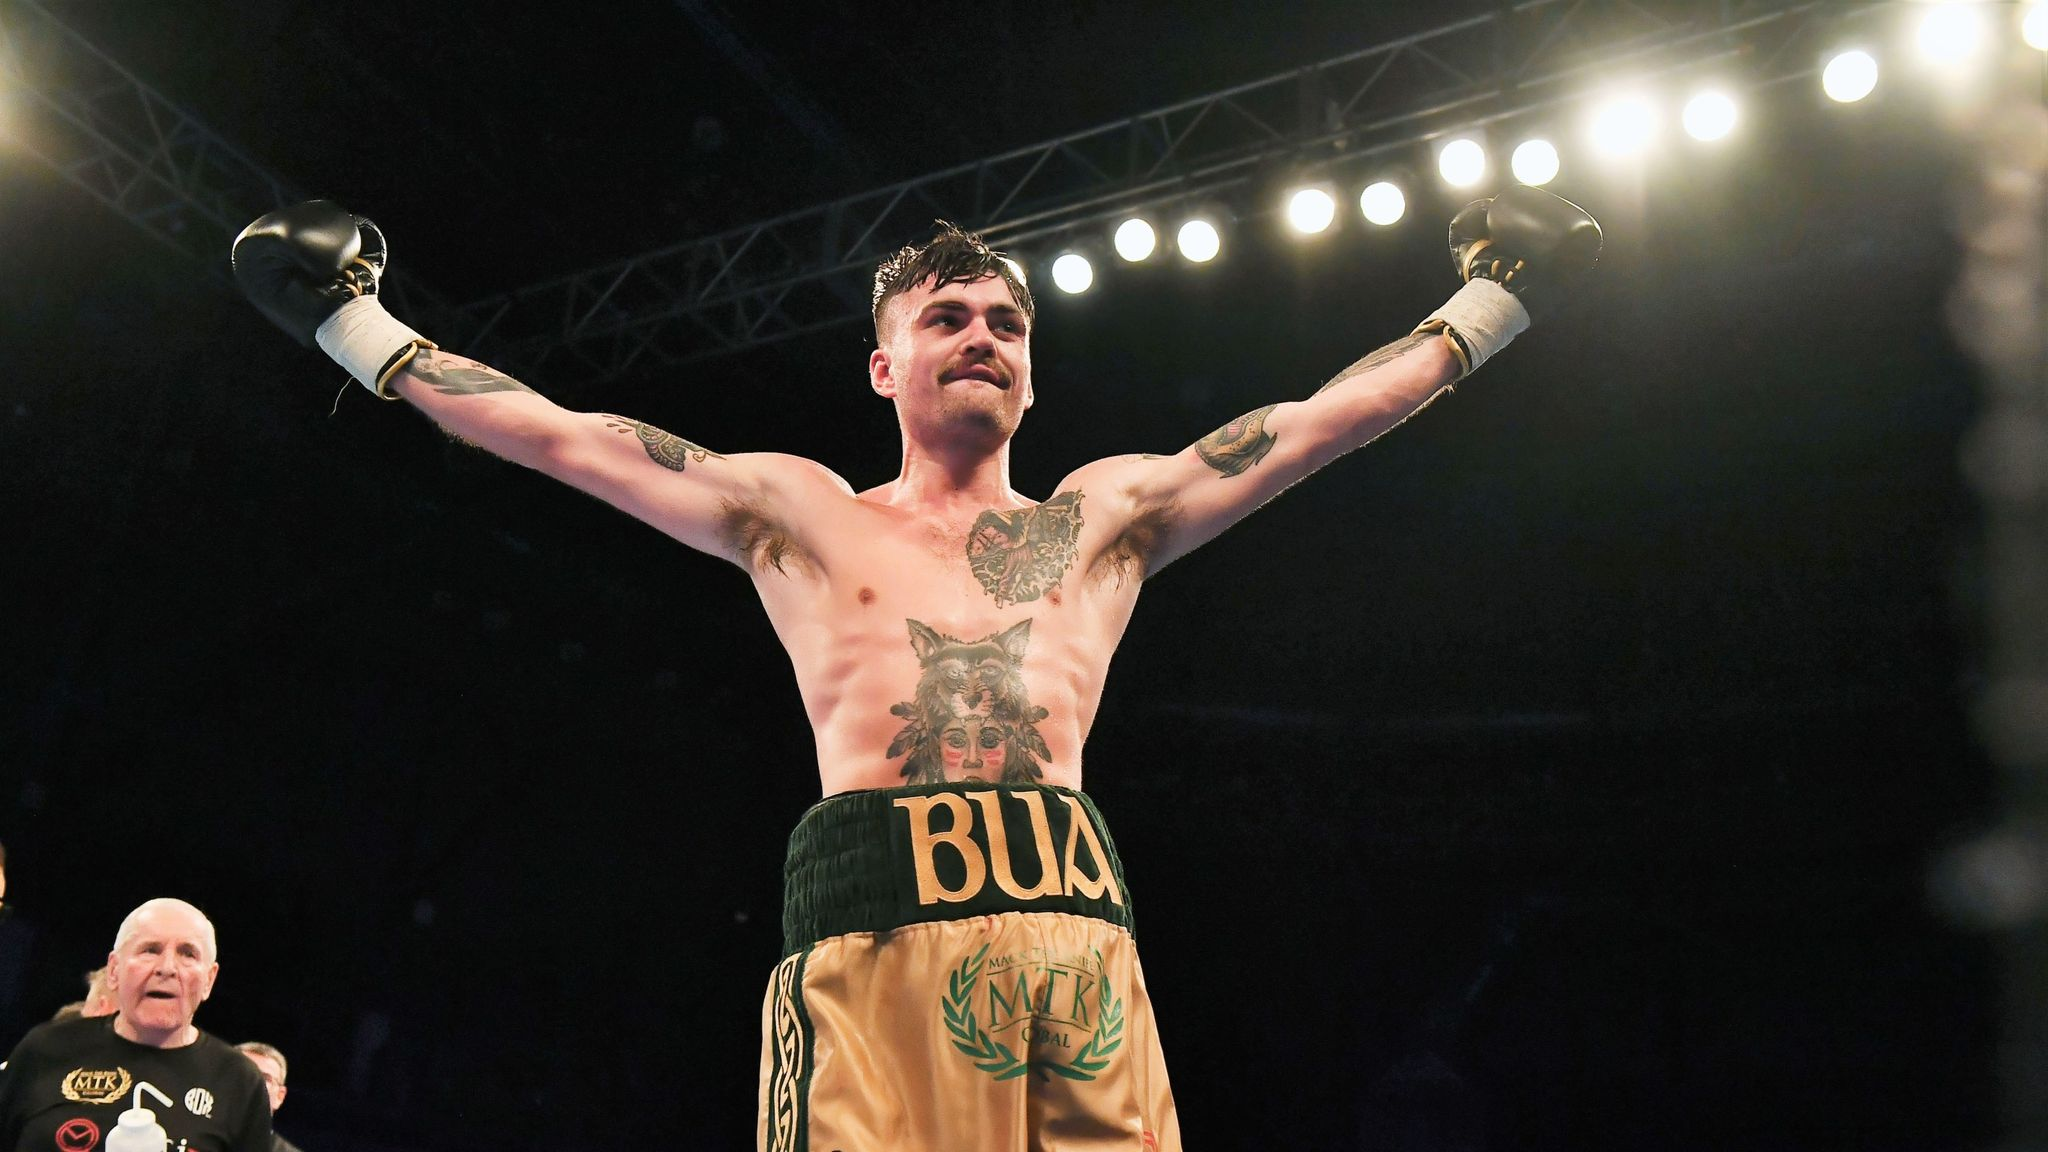 Golden Contract: Ohara Davies gives his take on Tyrone McKenna backstage bust-up